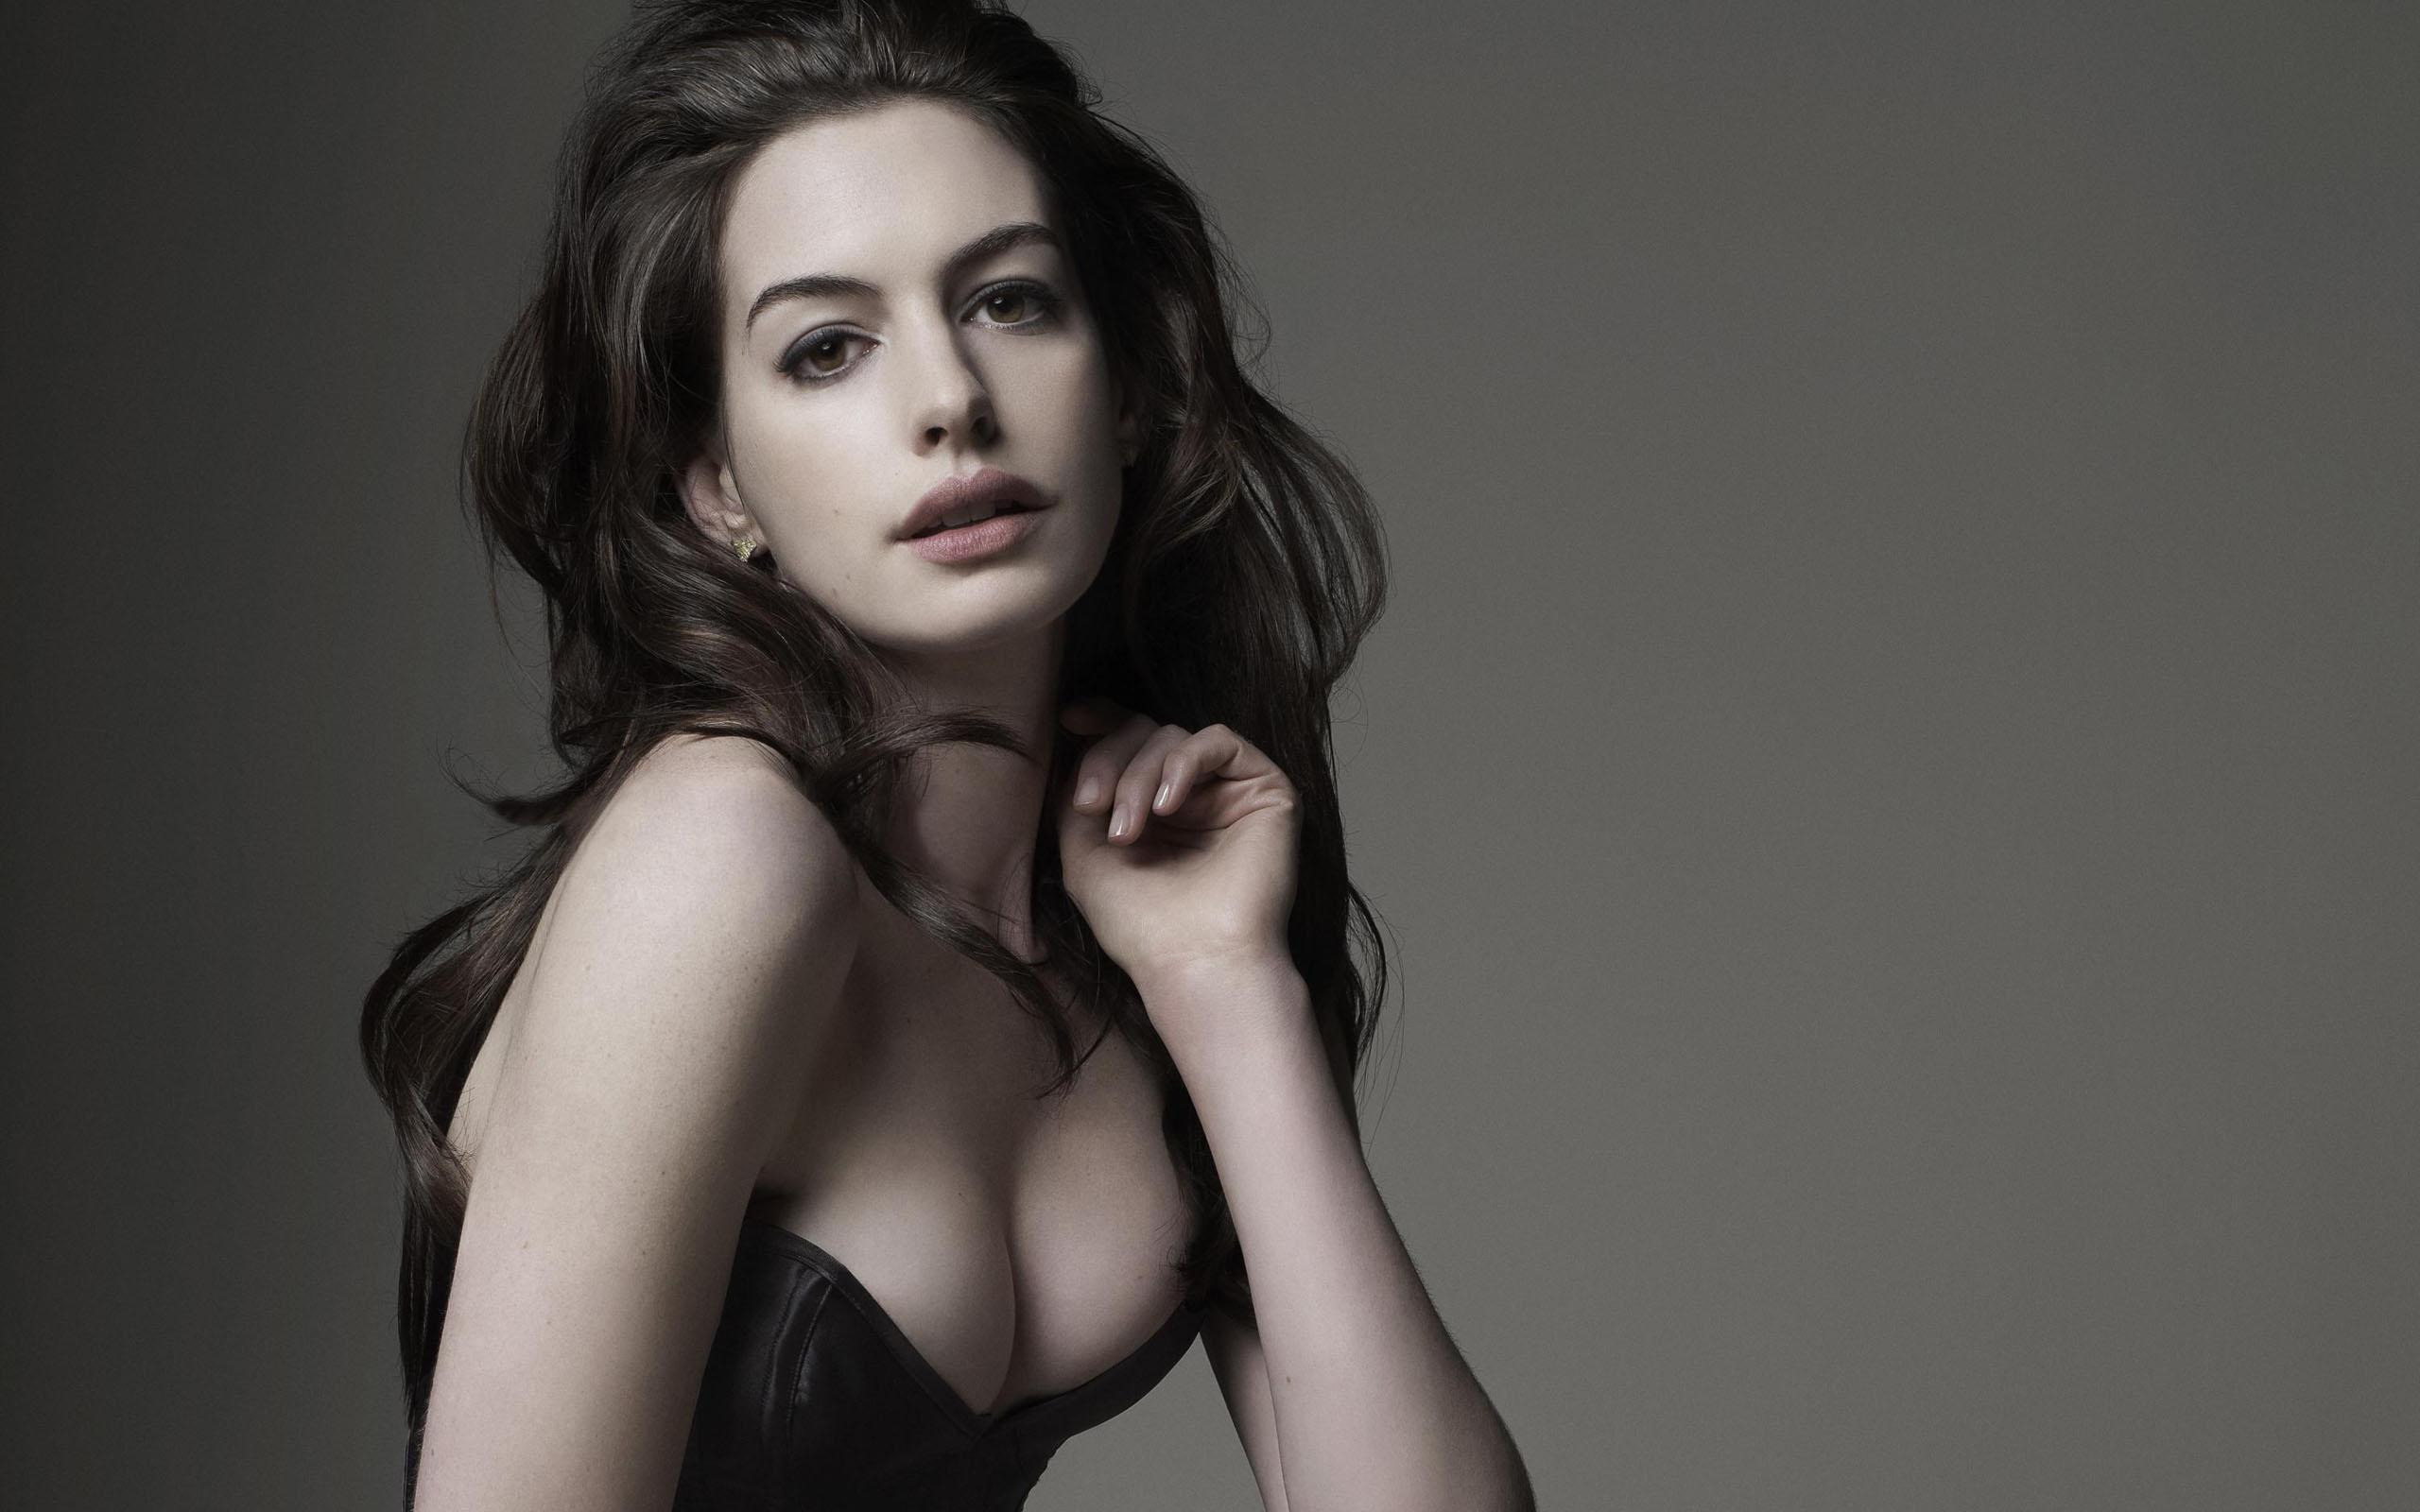 2560x1600 - Anne Hathaway Wallpapers 19